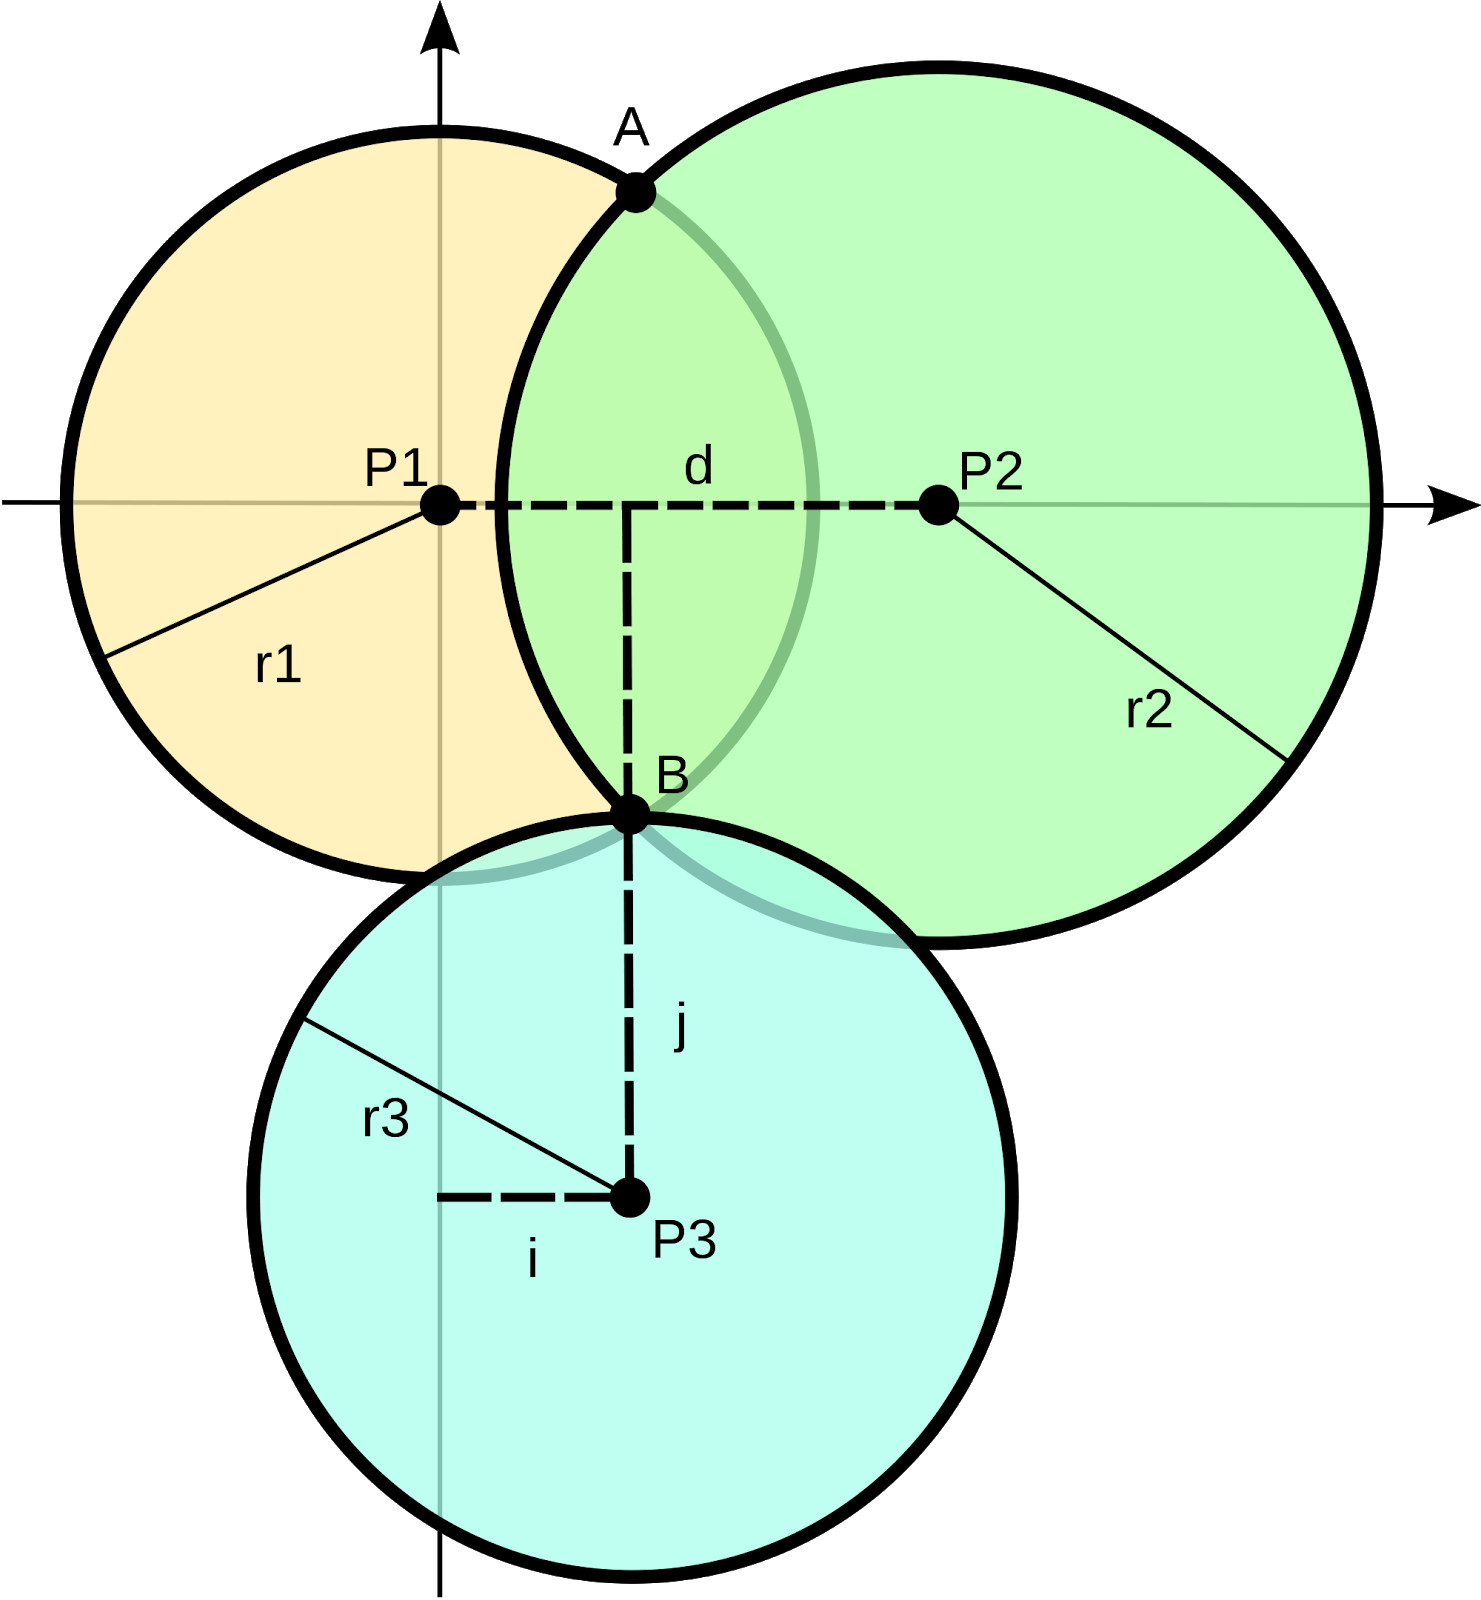 Figure 3. Trilateration diagram